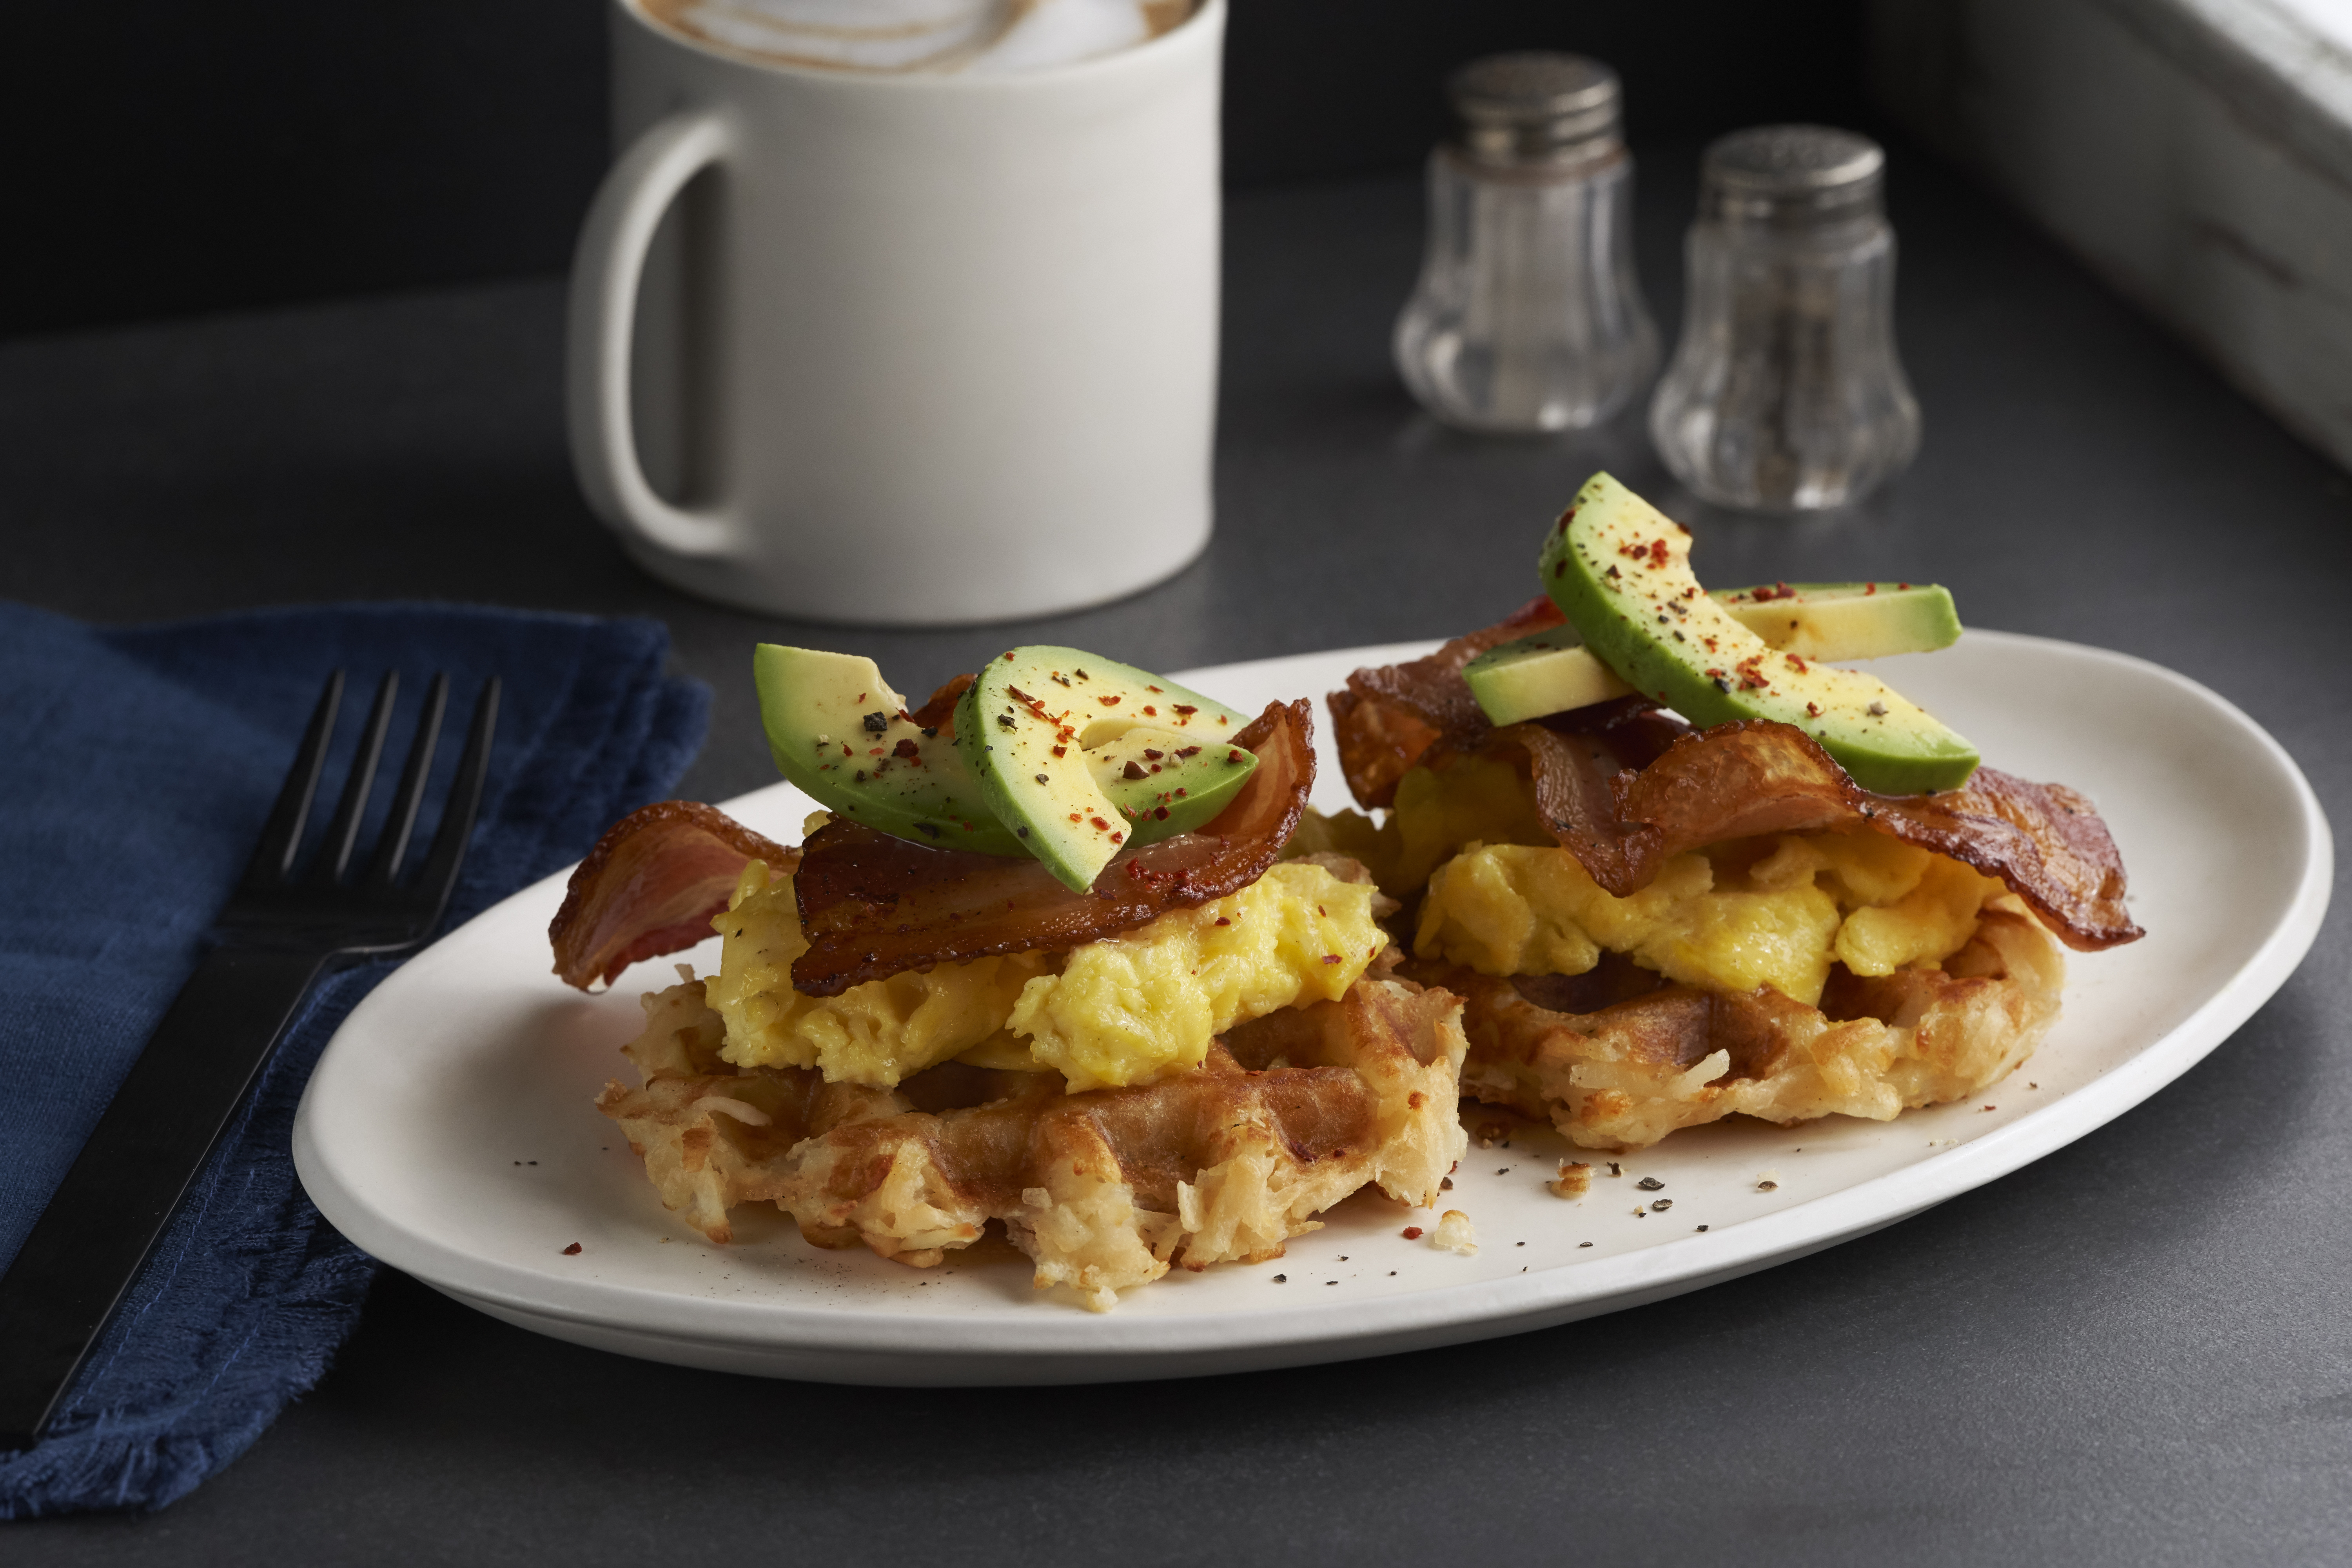 LW205 WAFFLED HASH BROWNS PLATED WITH SCRAMBLED EGGS, BACON AND AVOCADO